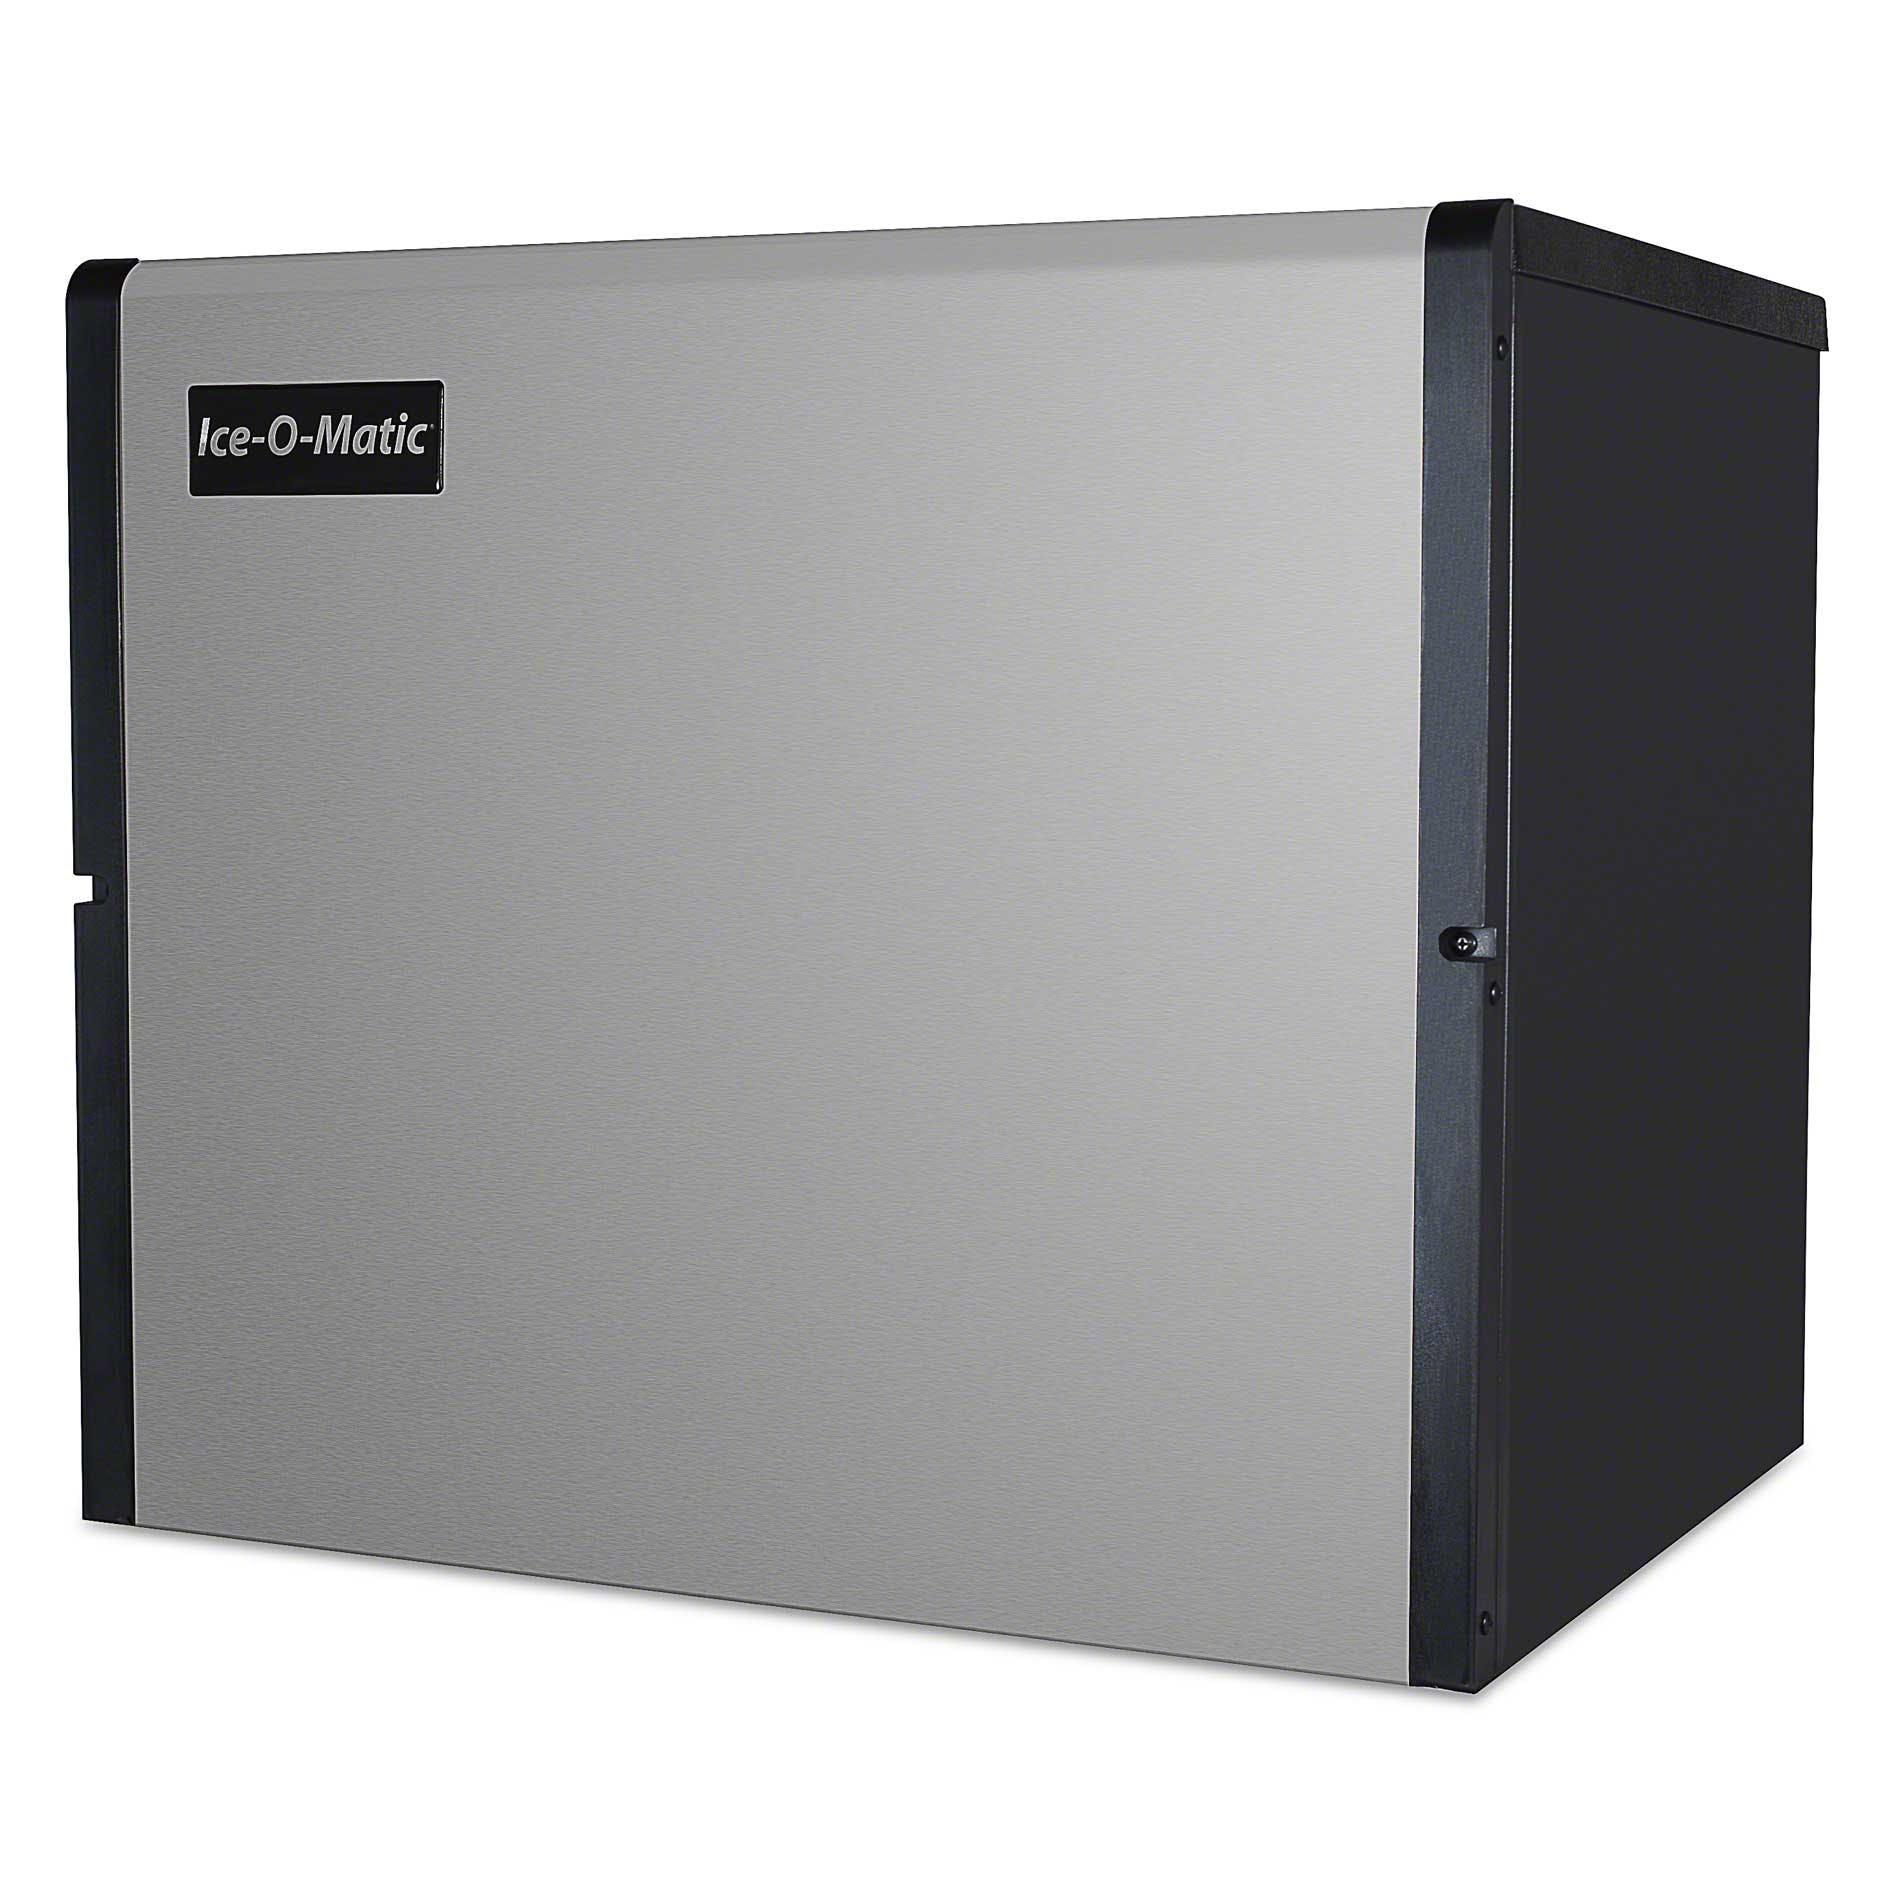 Ice-O-Matic - ICE0806FW 898 lb Full Cube Ice Machine - sold by Food Service Warehouse